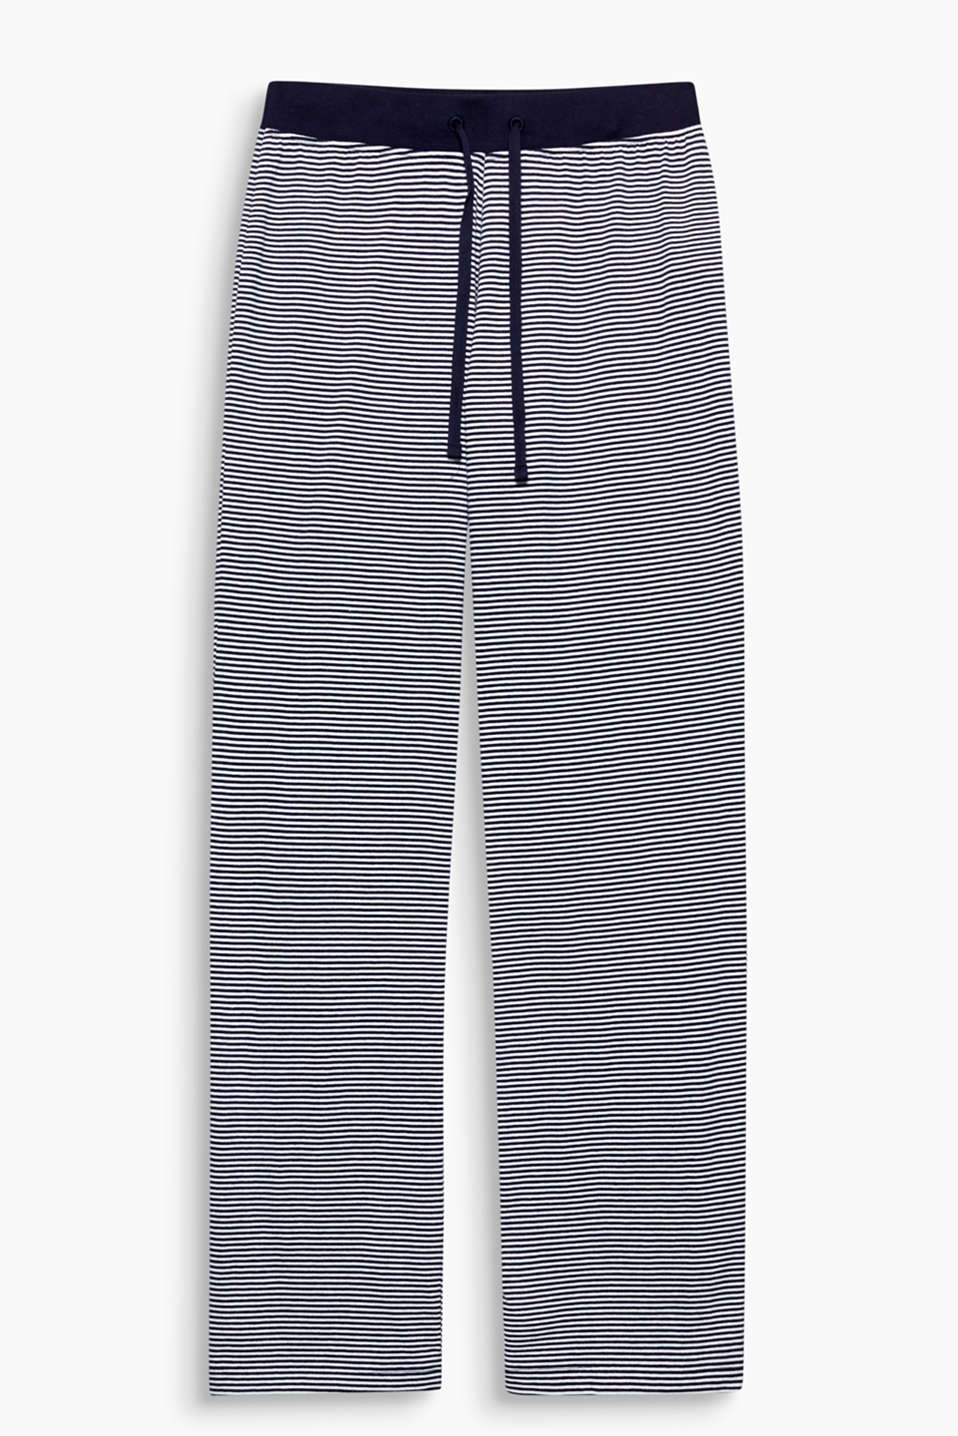 Soft jersey, cheerful stripes – these trousers have everything you need to feel good!